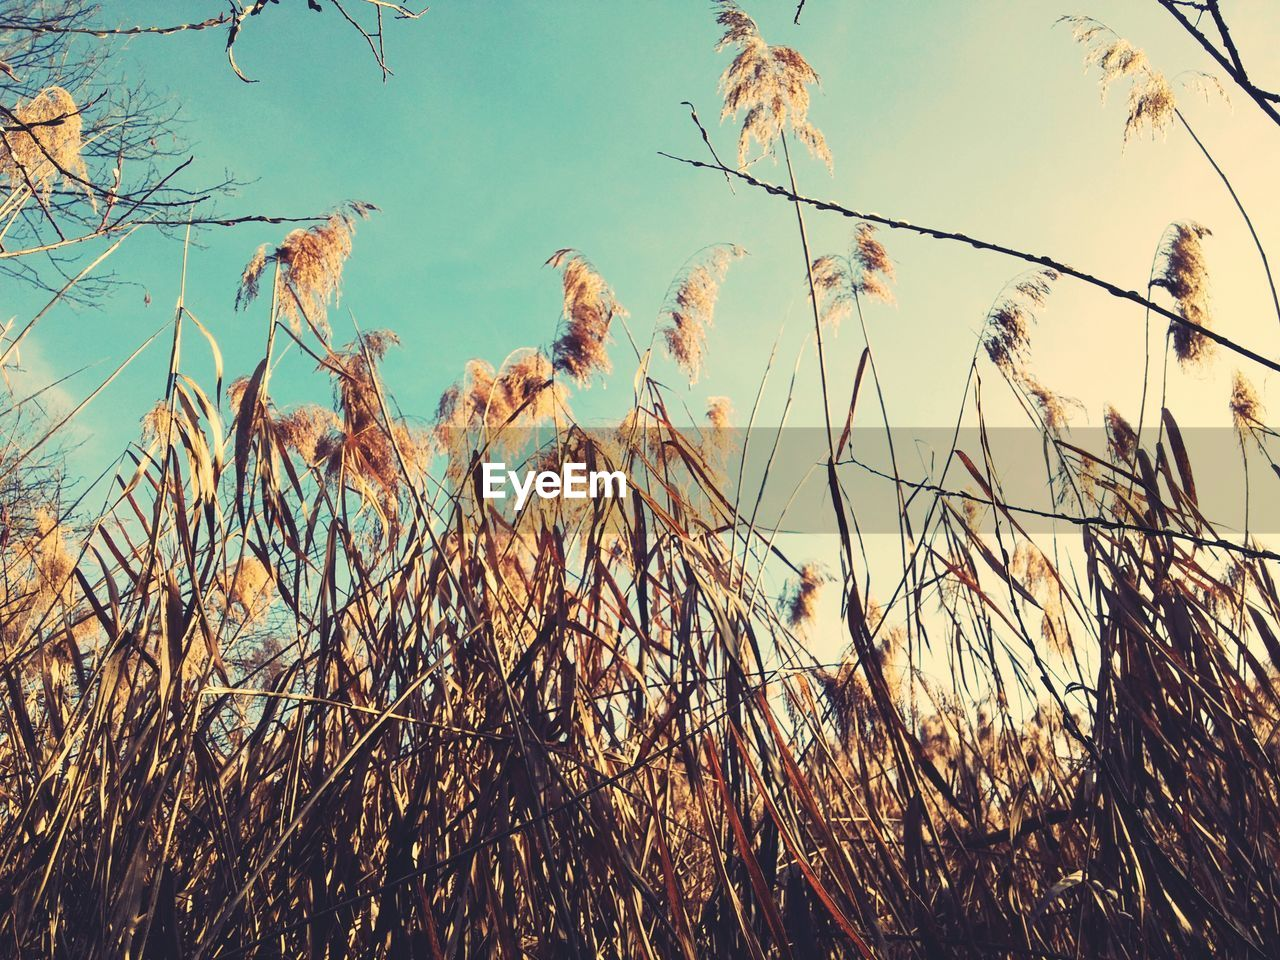 nature, growth, plant, grass, outdoors, no people, tranquility, day, beauty in nature, sky, close-up